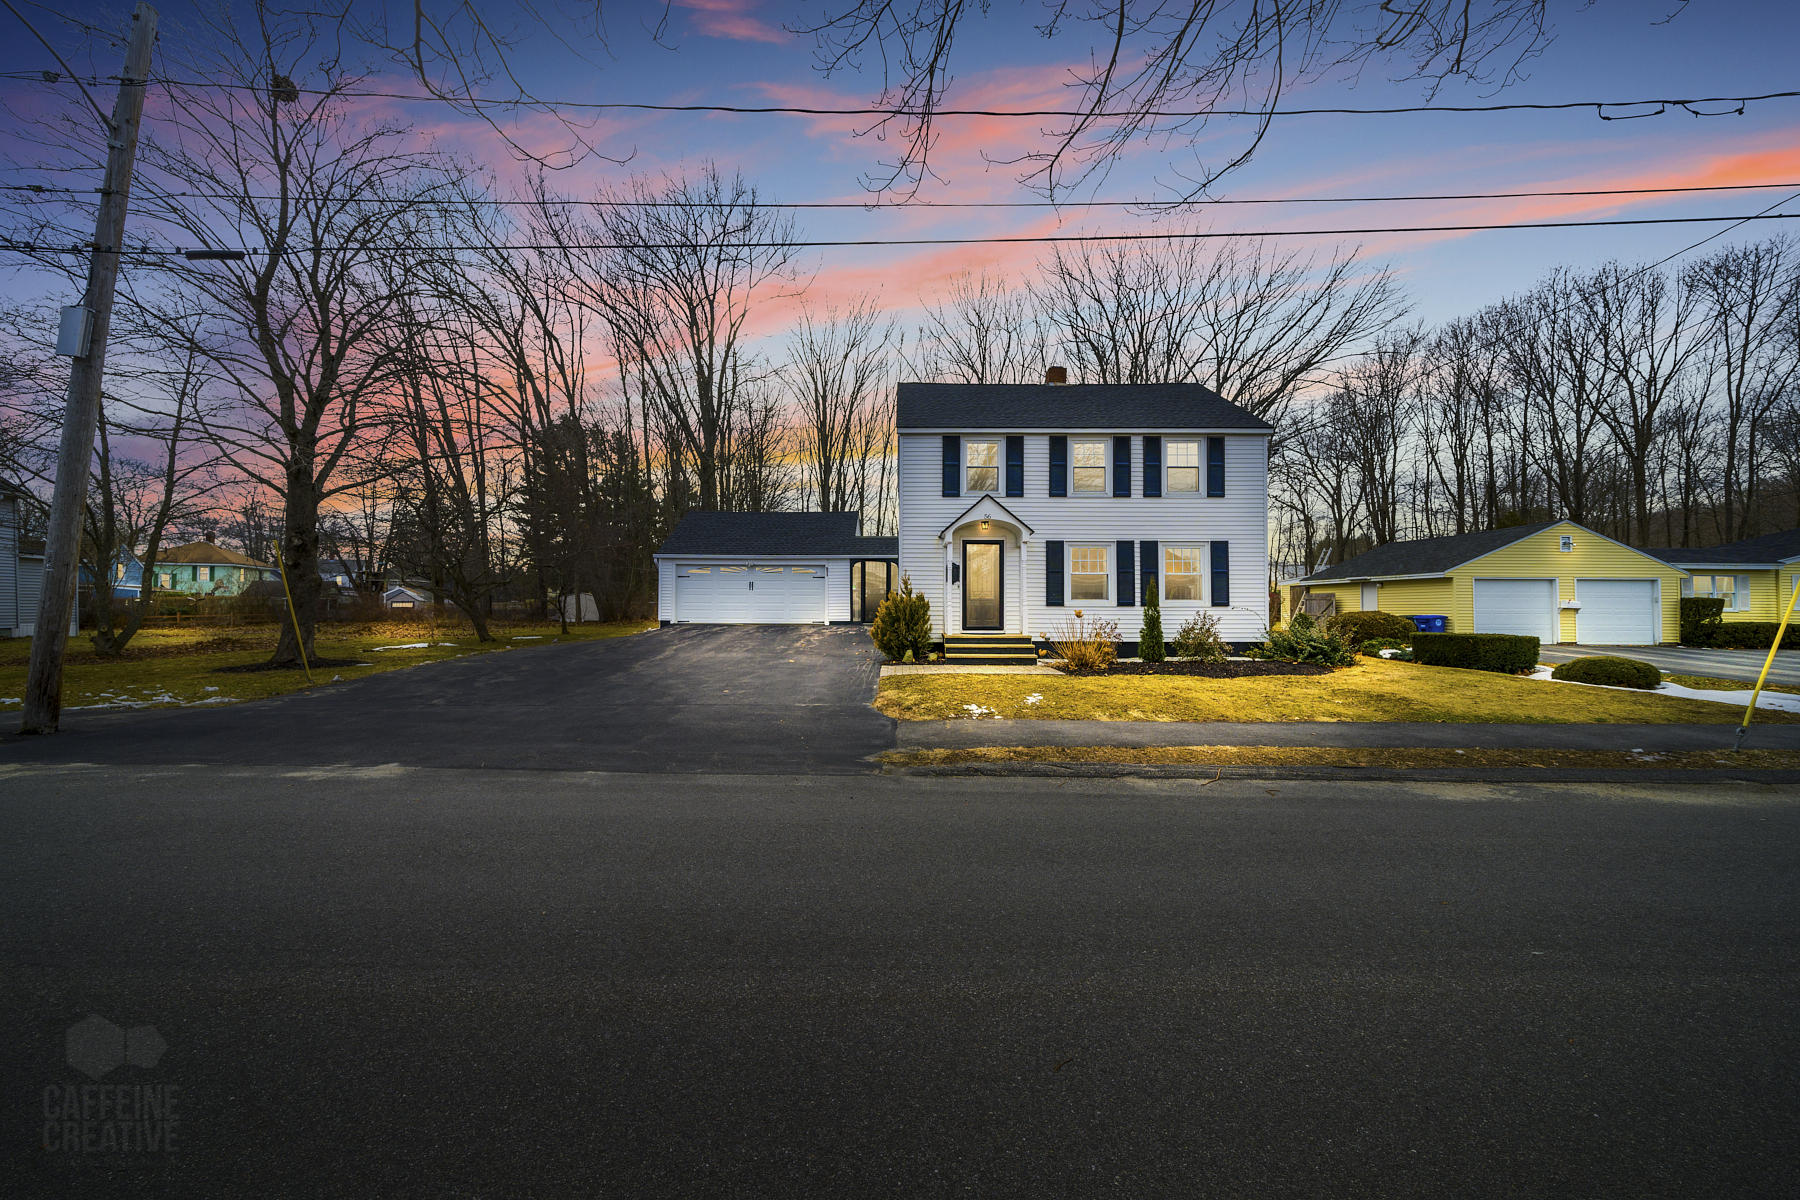 Main image for MLS listing 1480104